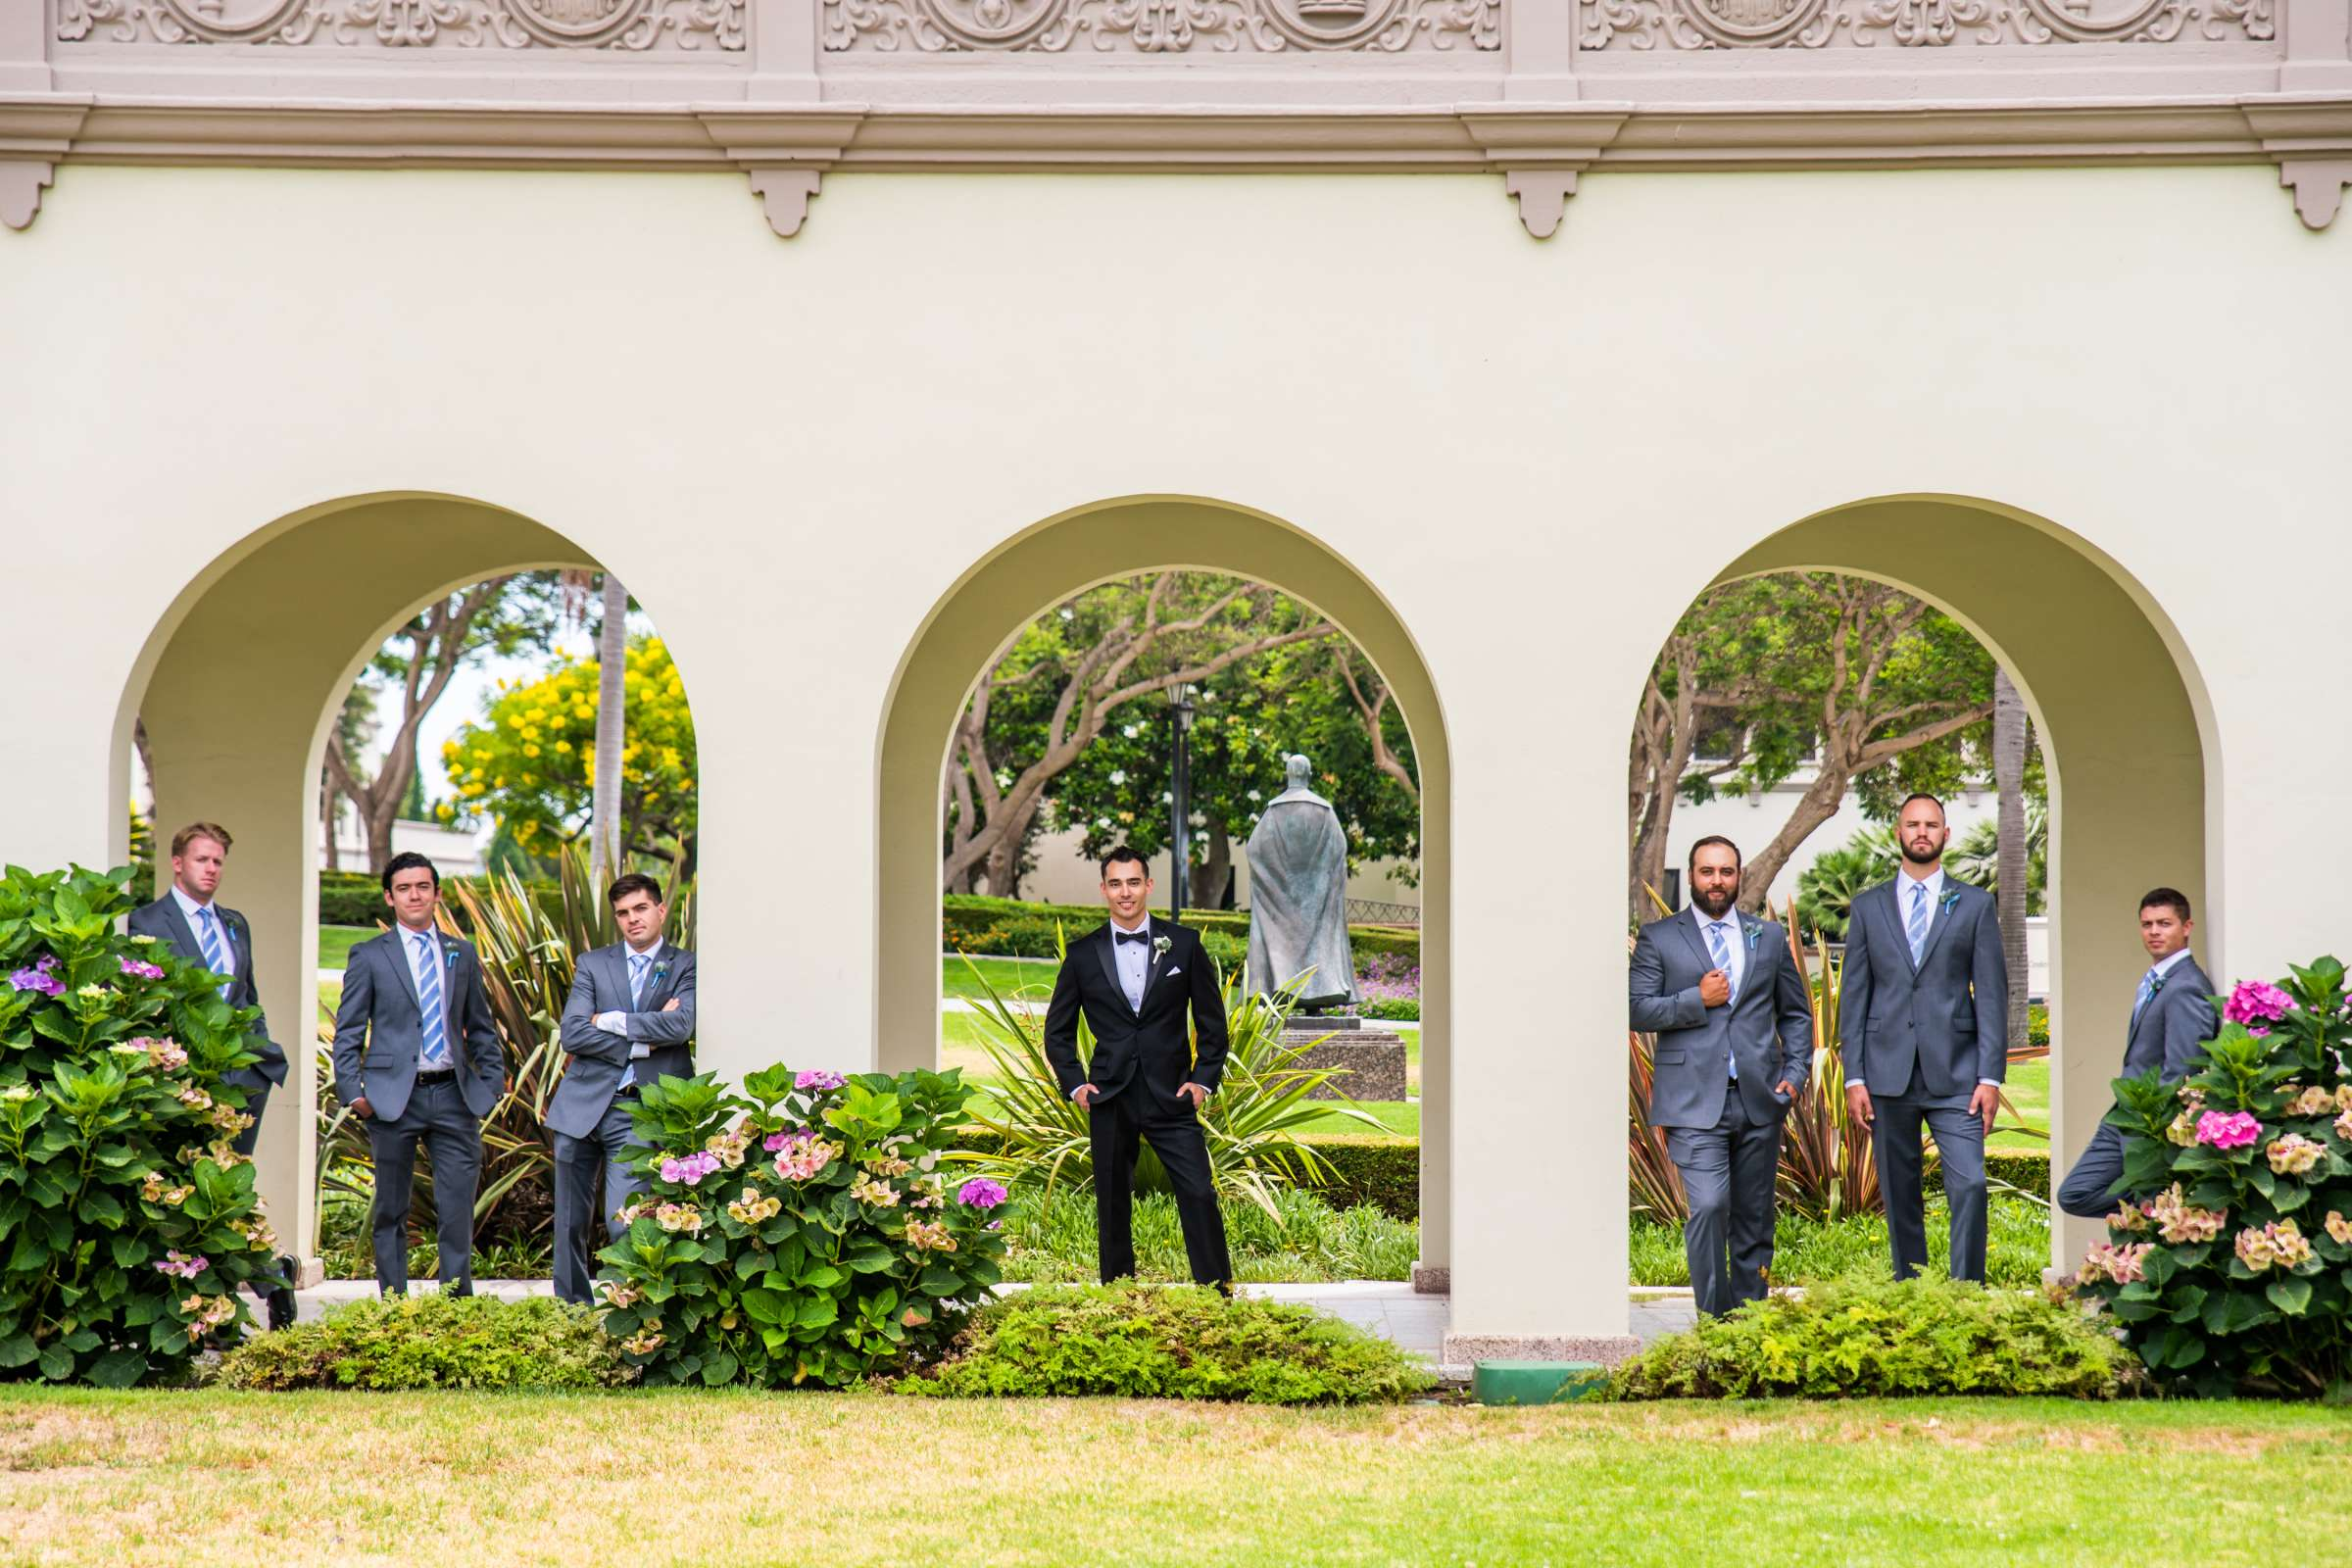 The Prado Wedding coordinated by Bliss Events, Sara and Marvin Wedding Photo #559516 by True Photography